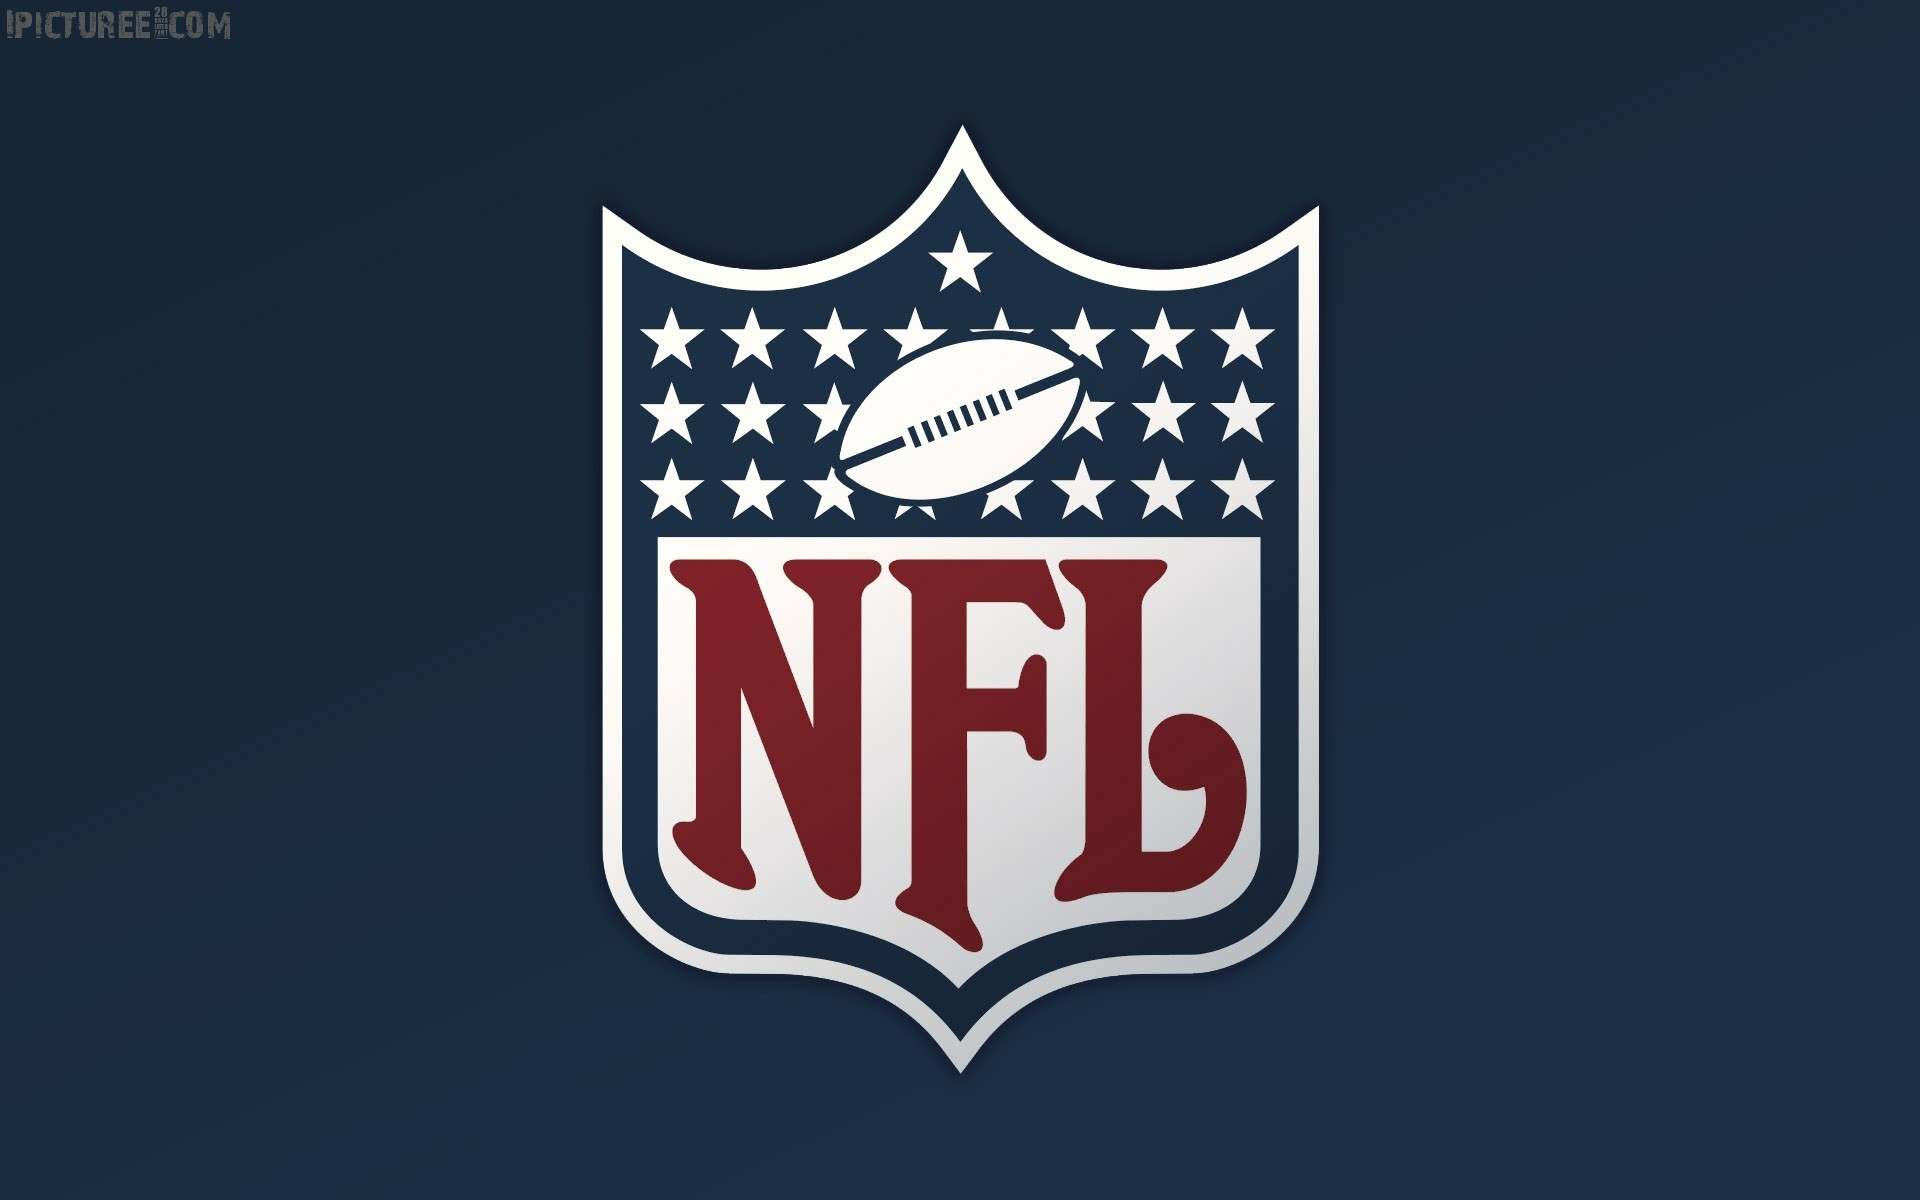 NFL 2014 iPhone 6 wallpaper